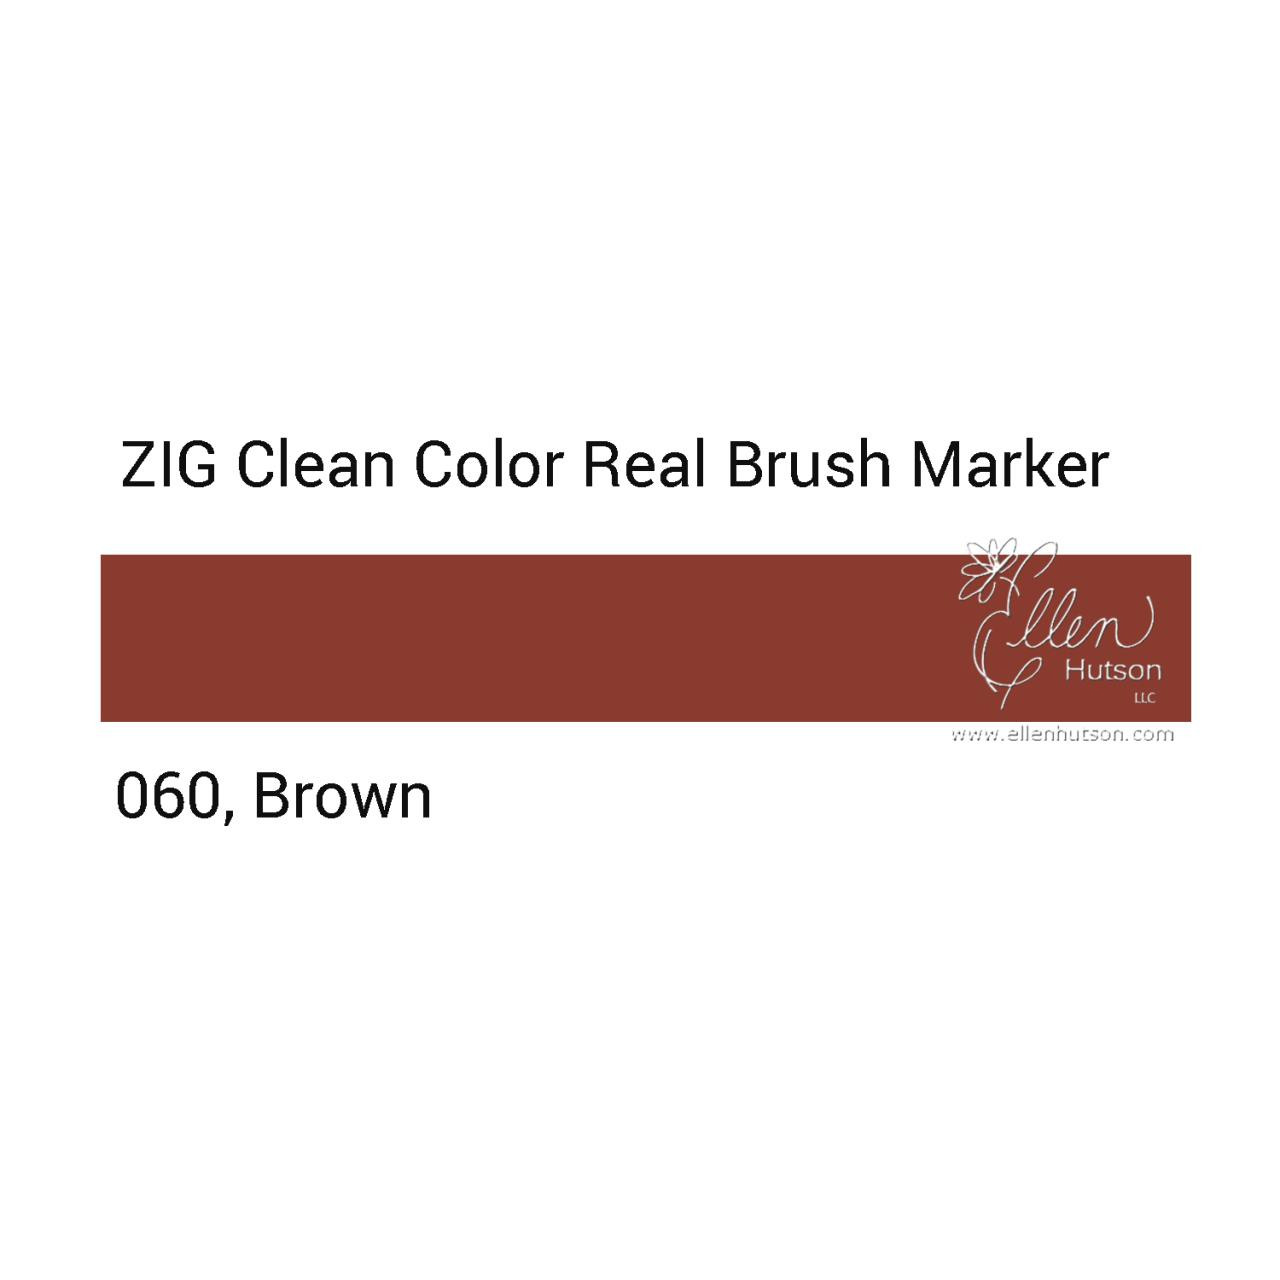 060 - Brown, ZIG Clean Color Real Brush Marker -